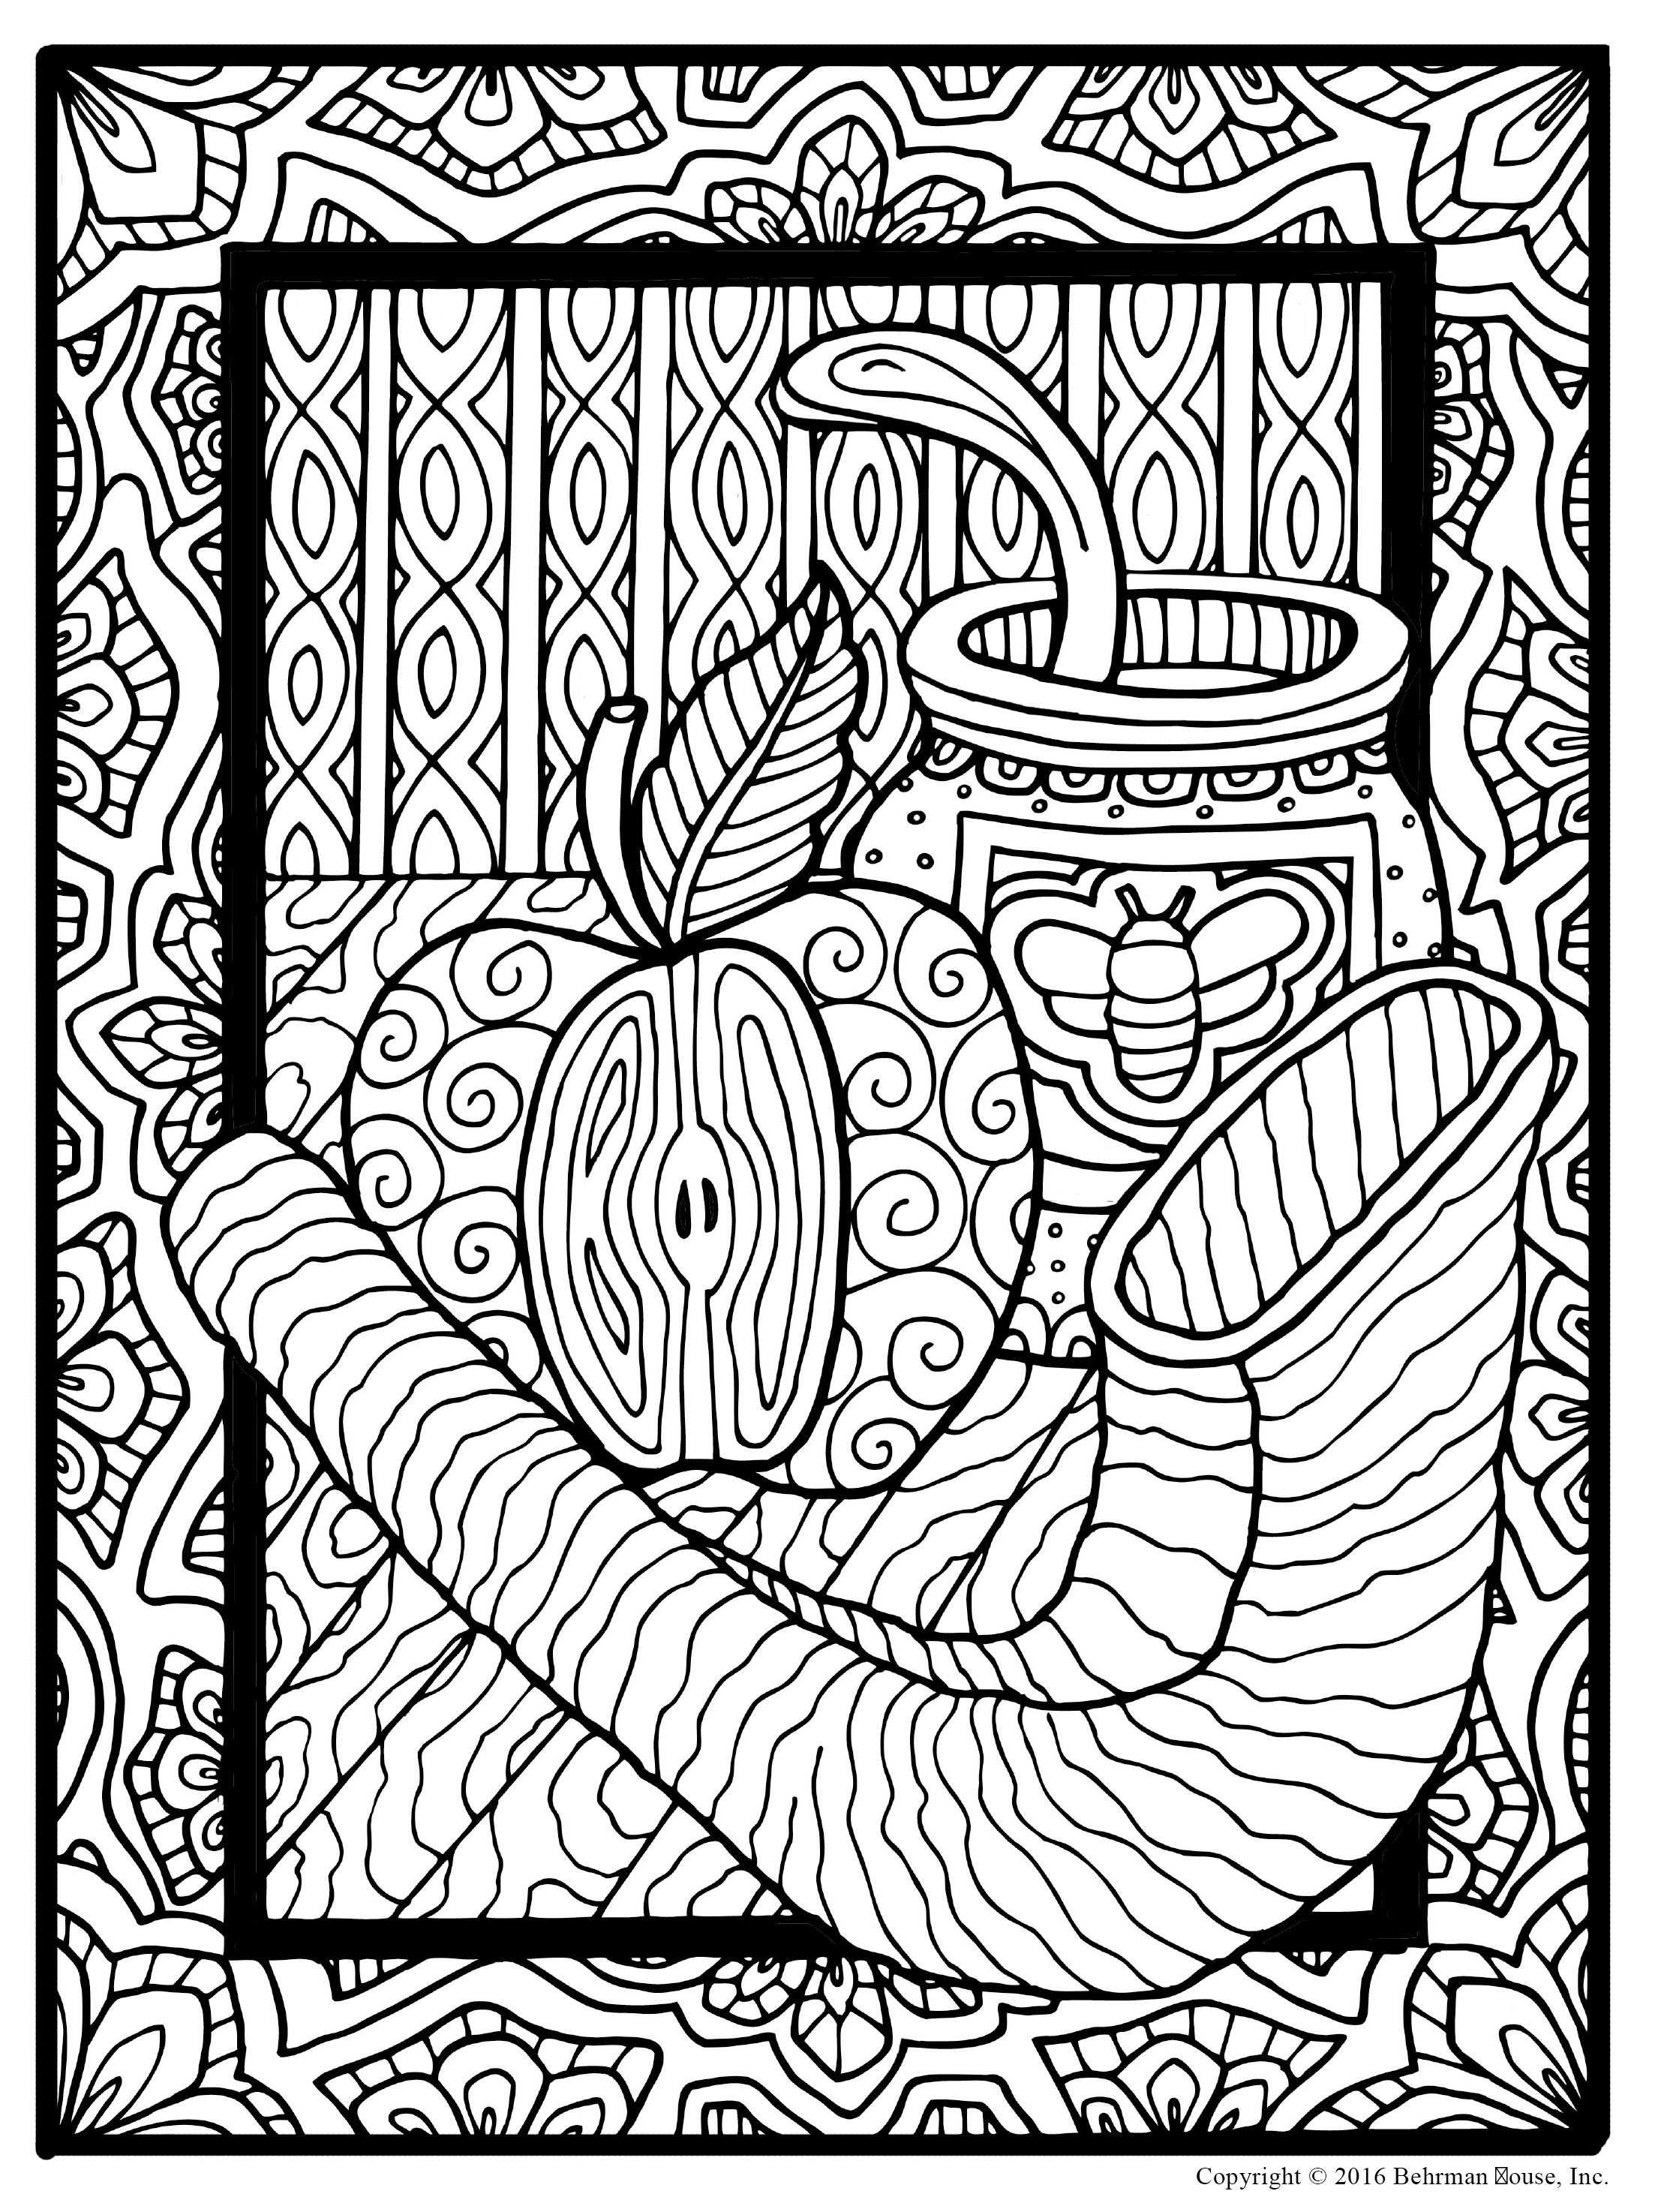 The new alternative to meditation behrman house publishing for Torah coloring pages